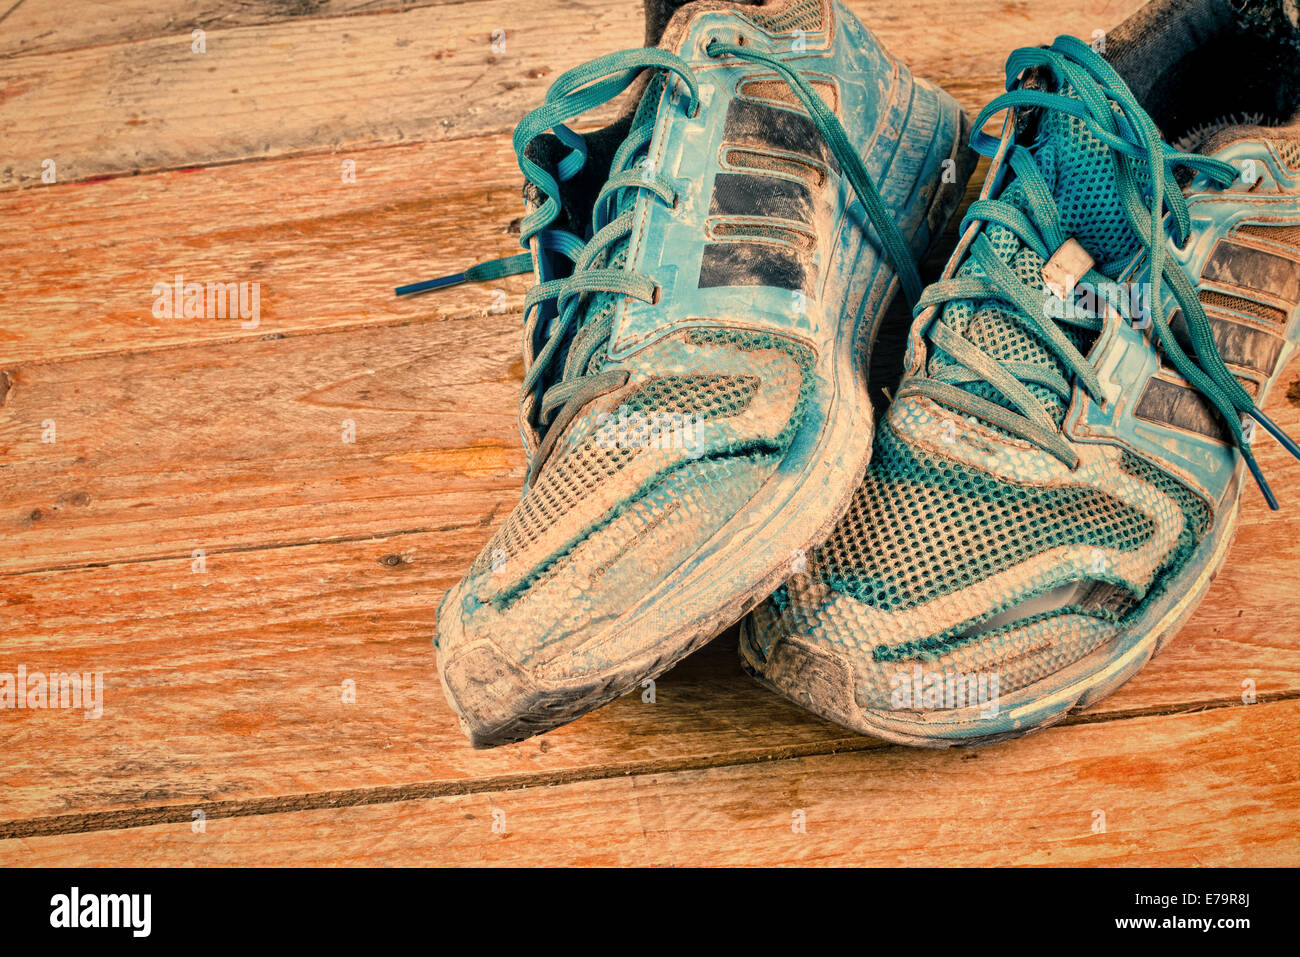 Very dirty and worn out sports shoes - Stock Image